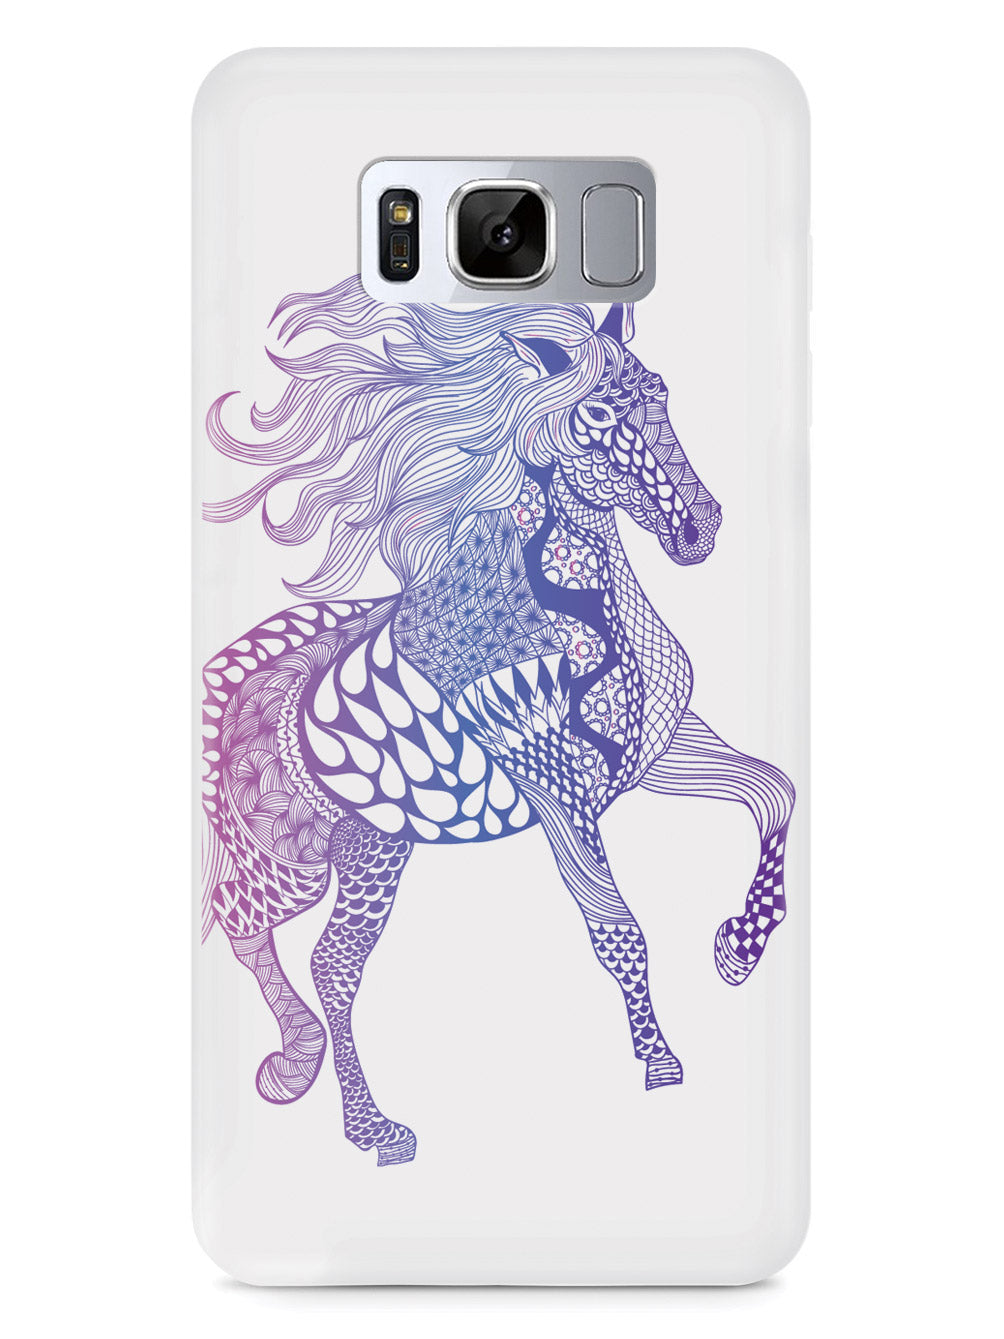 Zentangle Horse - Magenta Haze - White Case